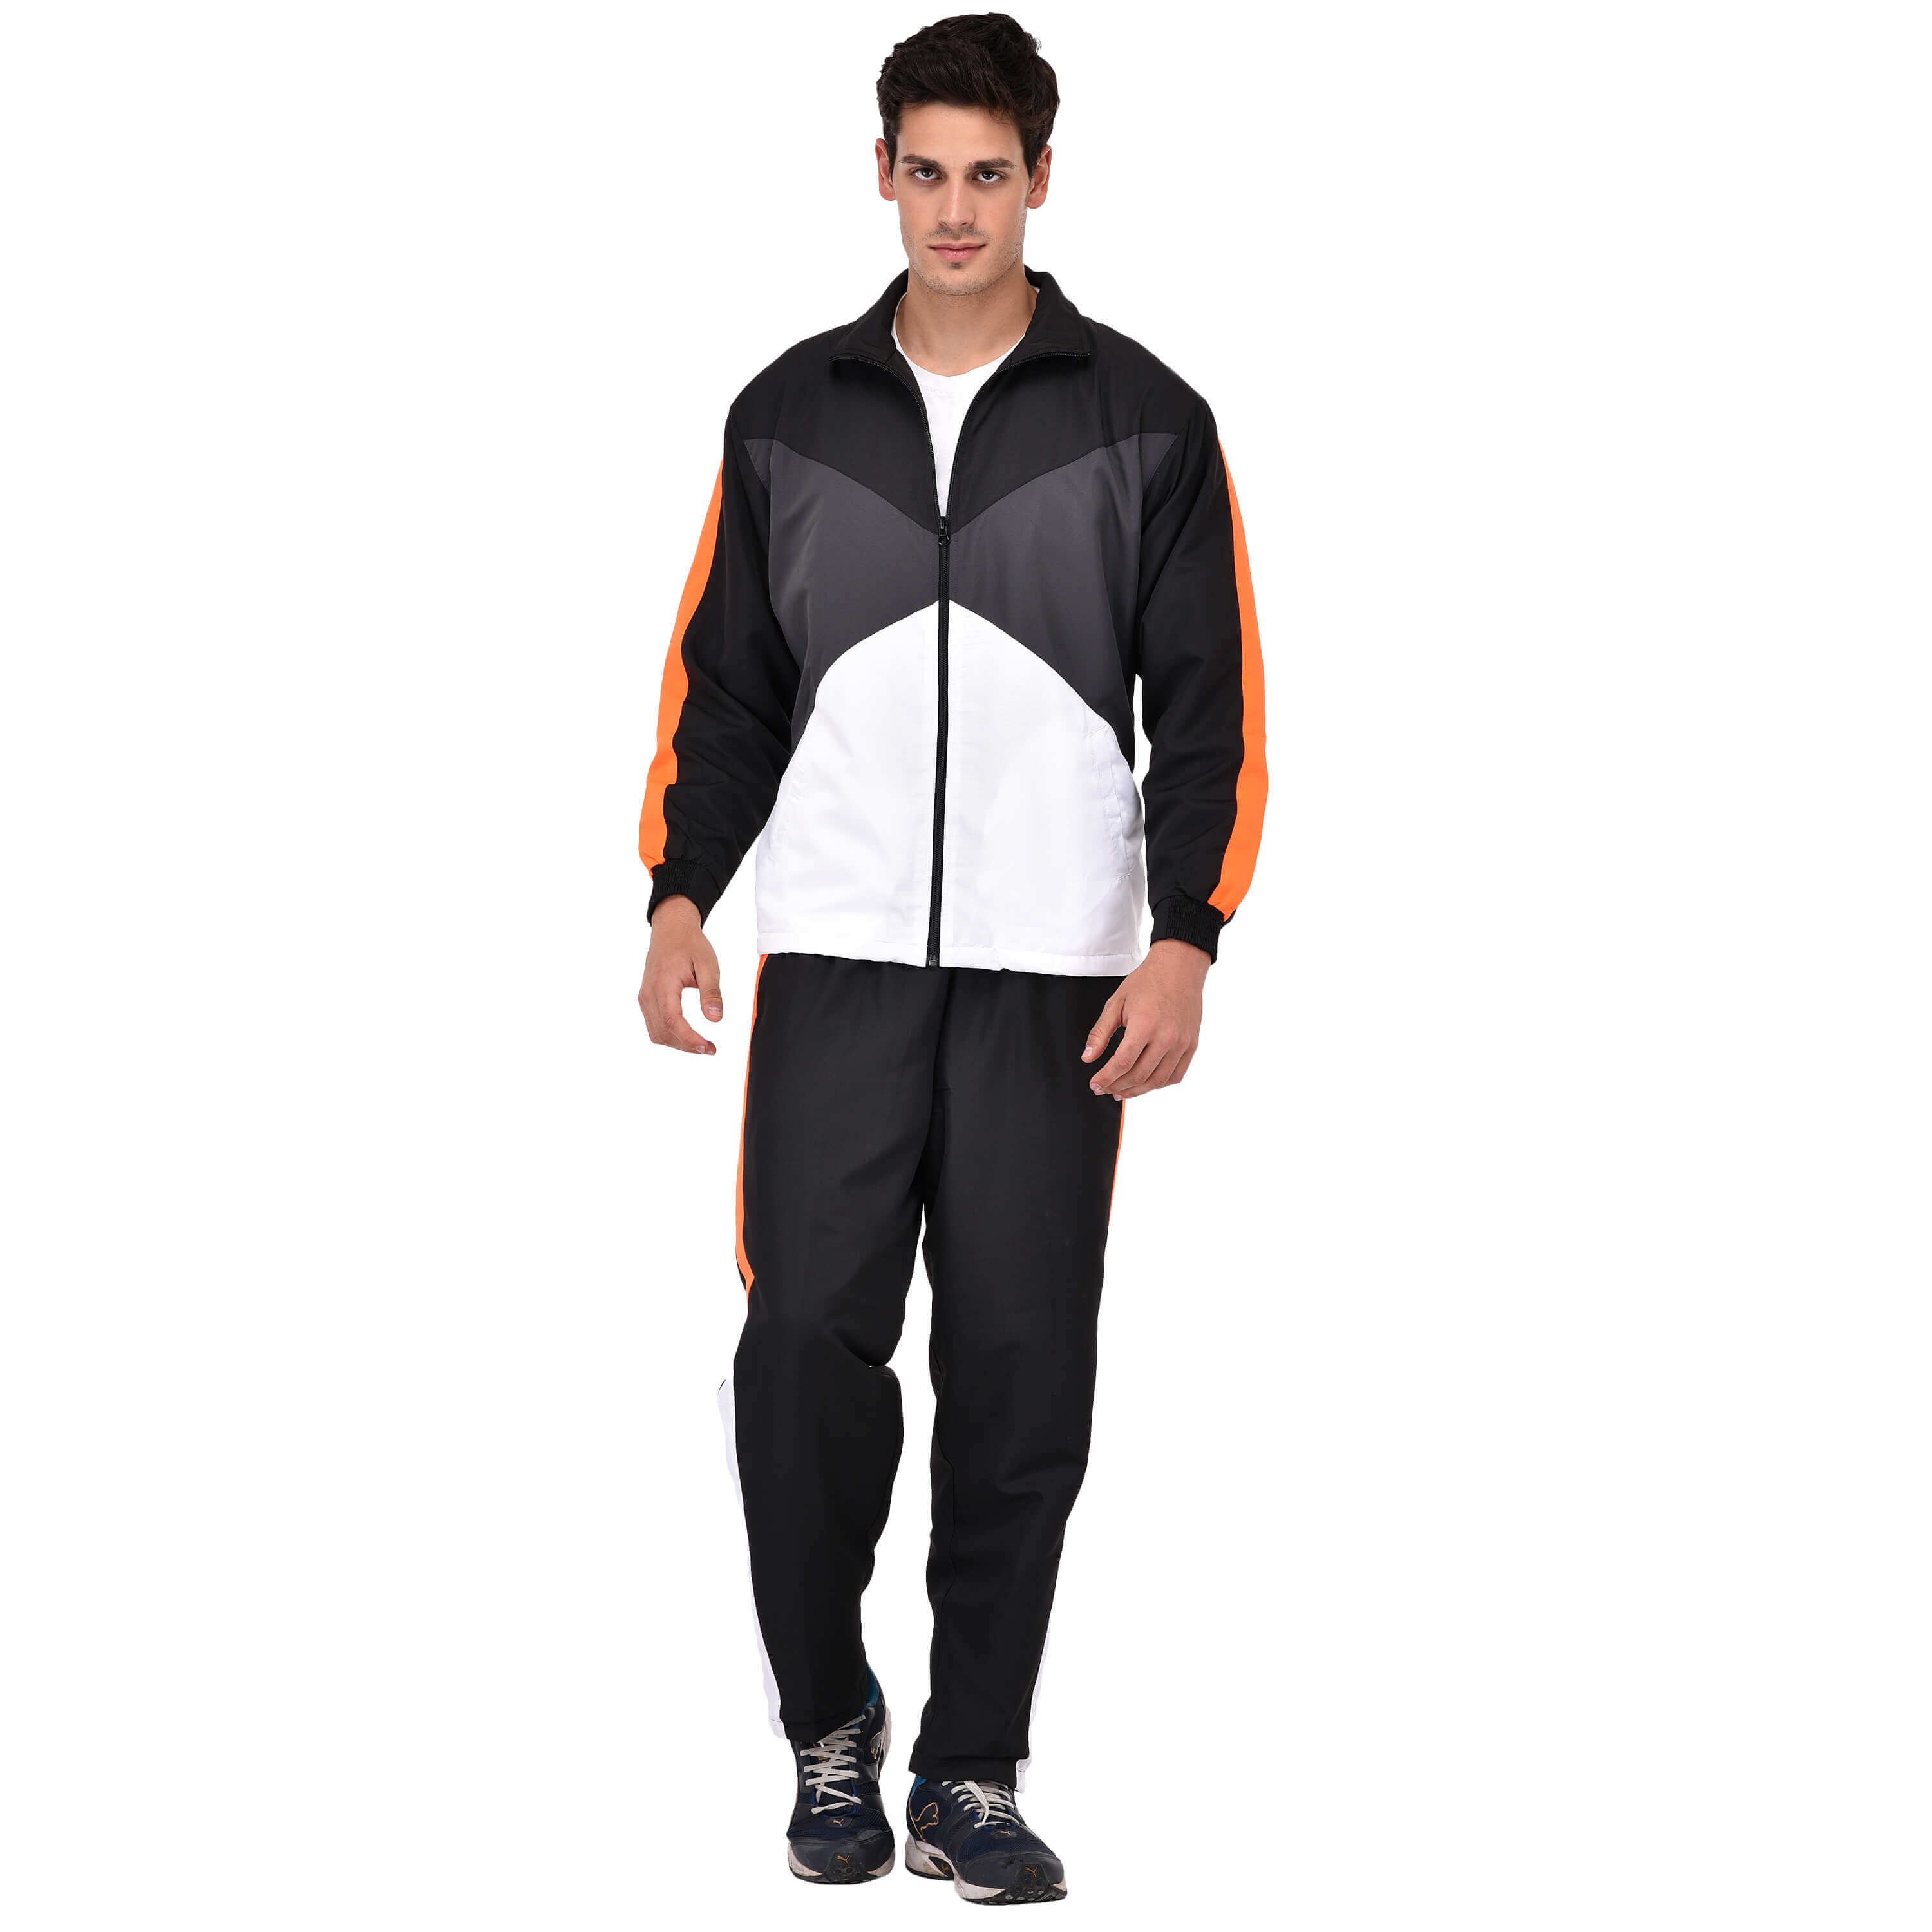 Sports Tracksuit Manufacturers in Raipur